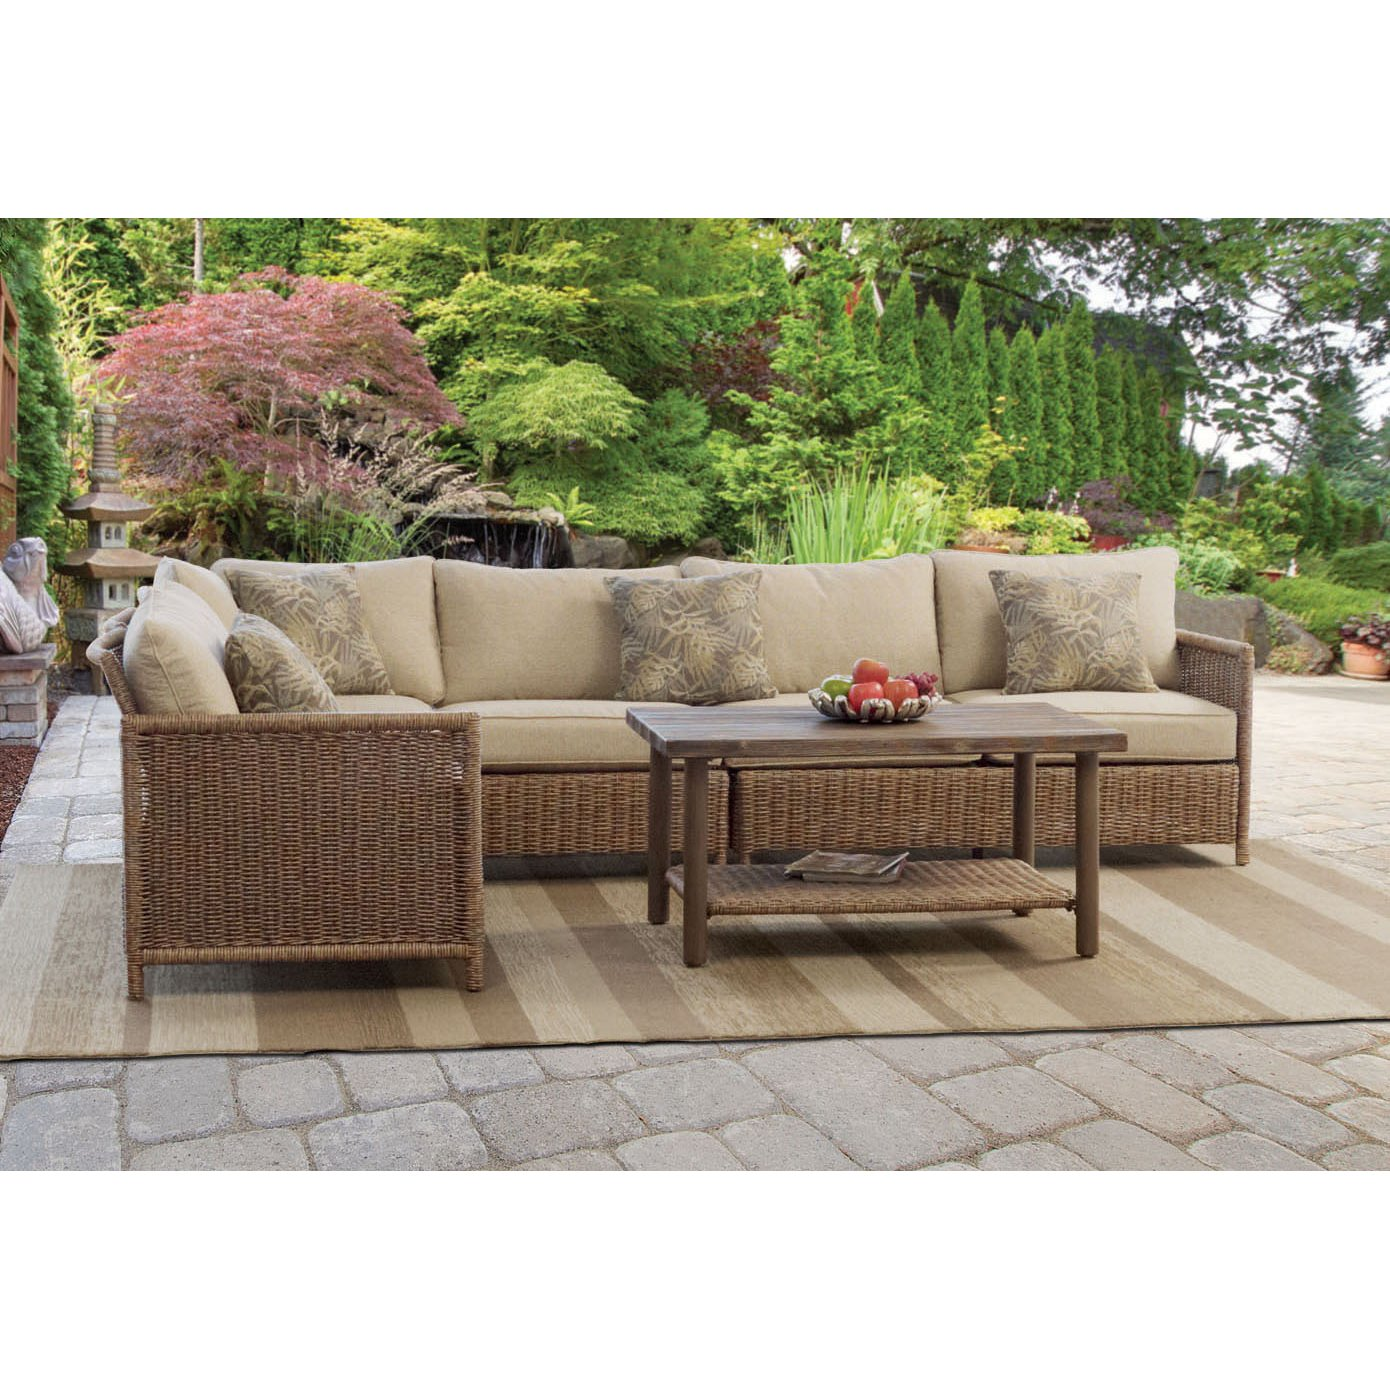 set pe detail sectional sofa rattan couch product patio deck new wicker furniture outdoor